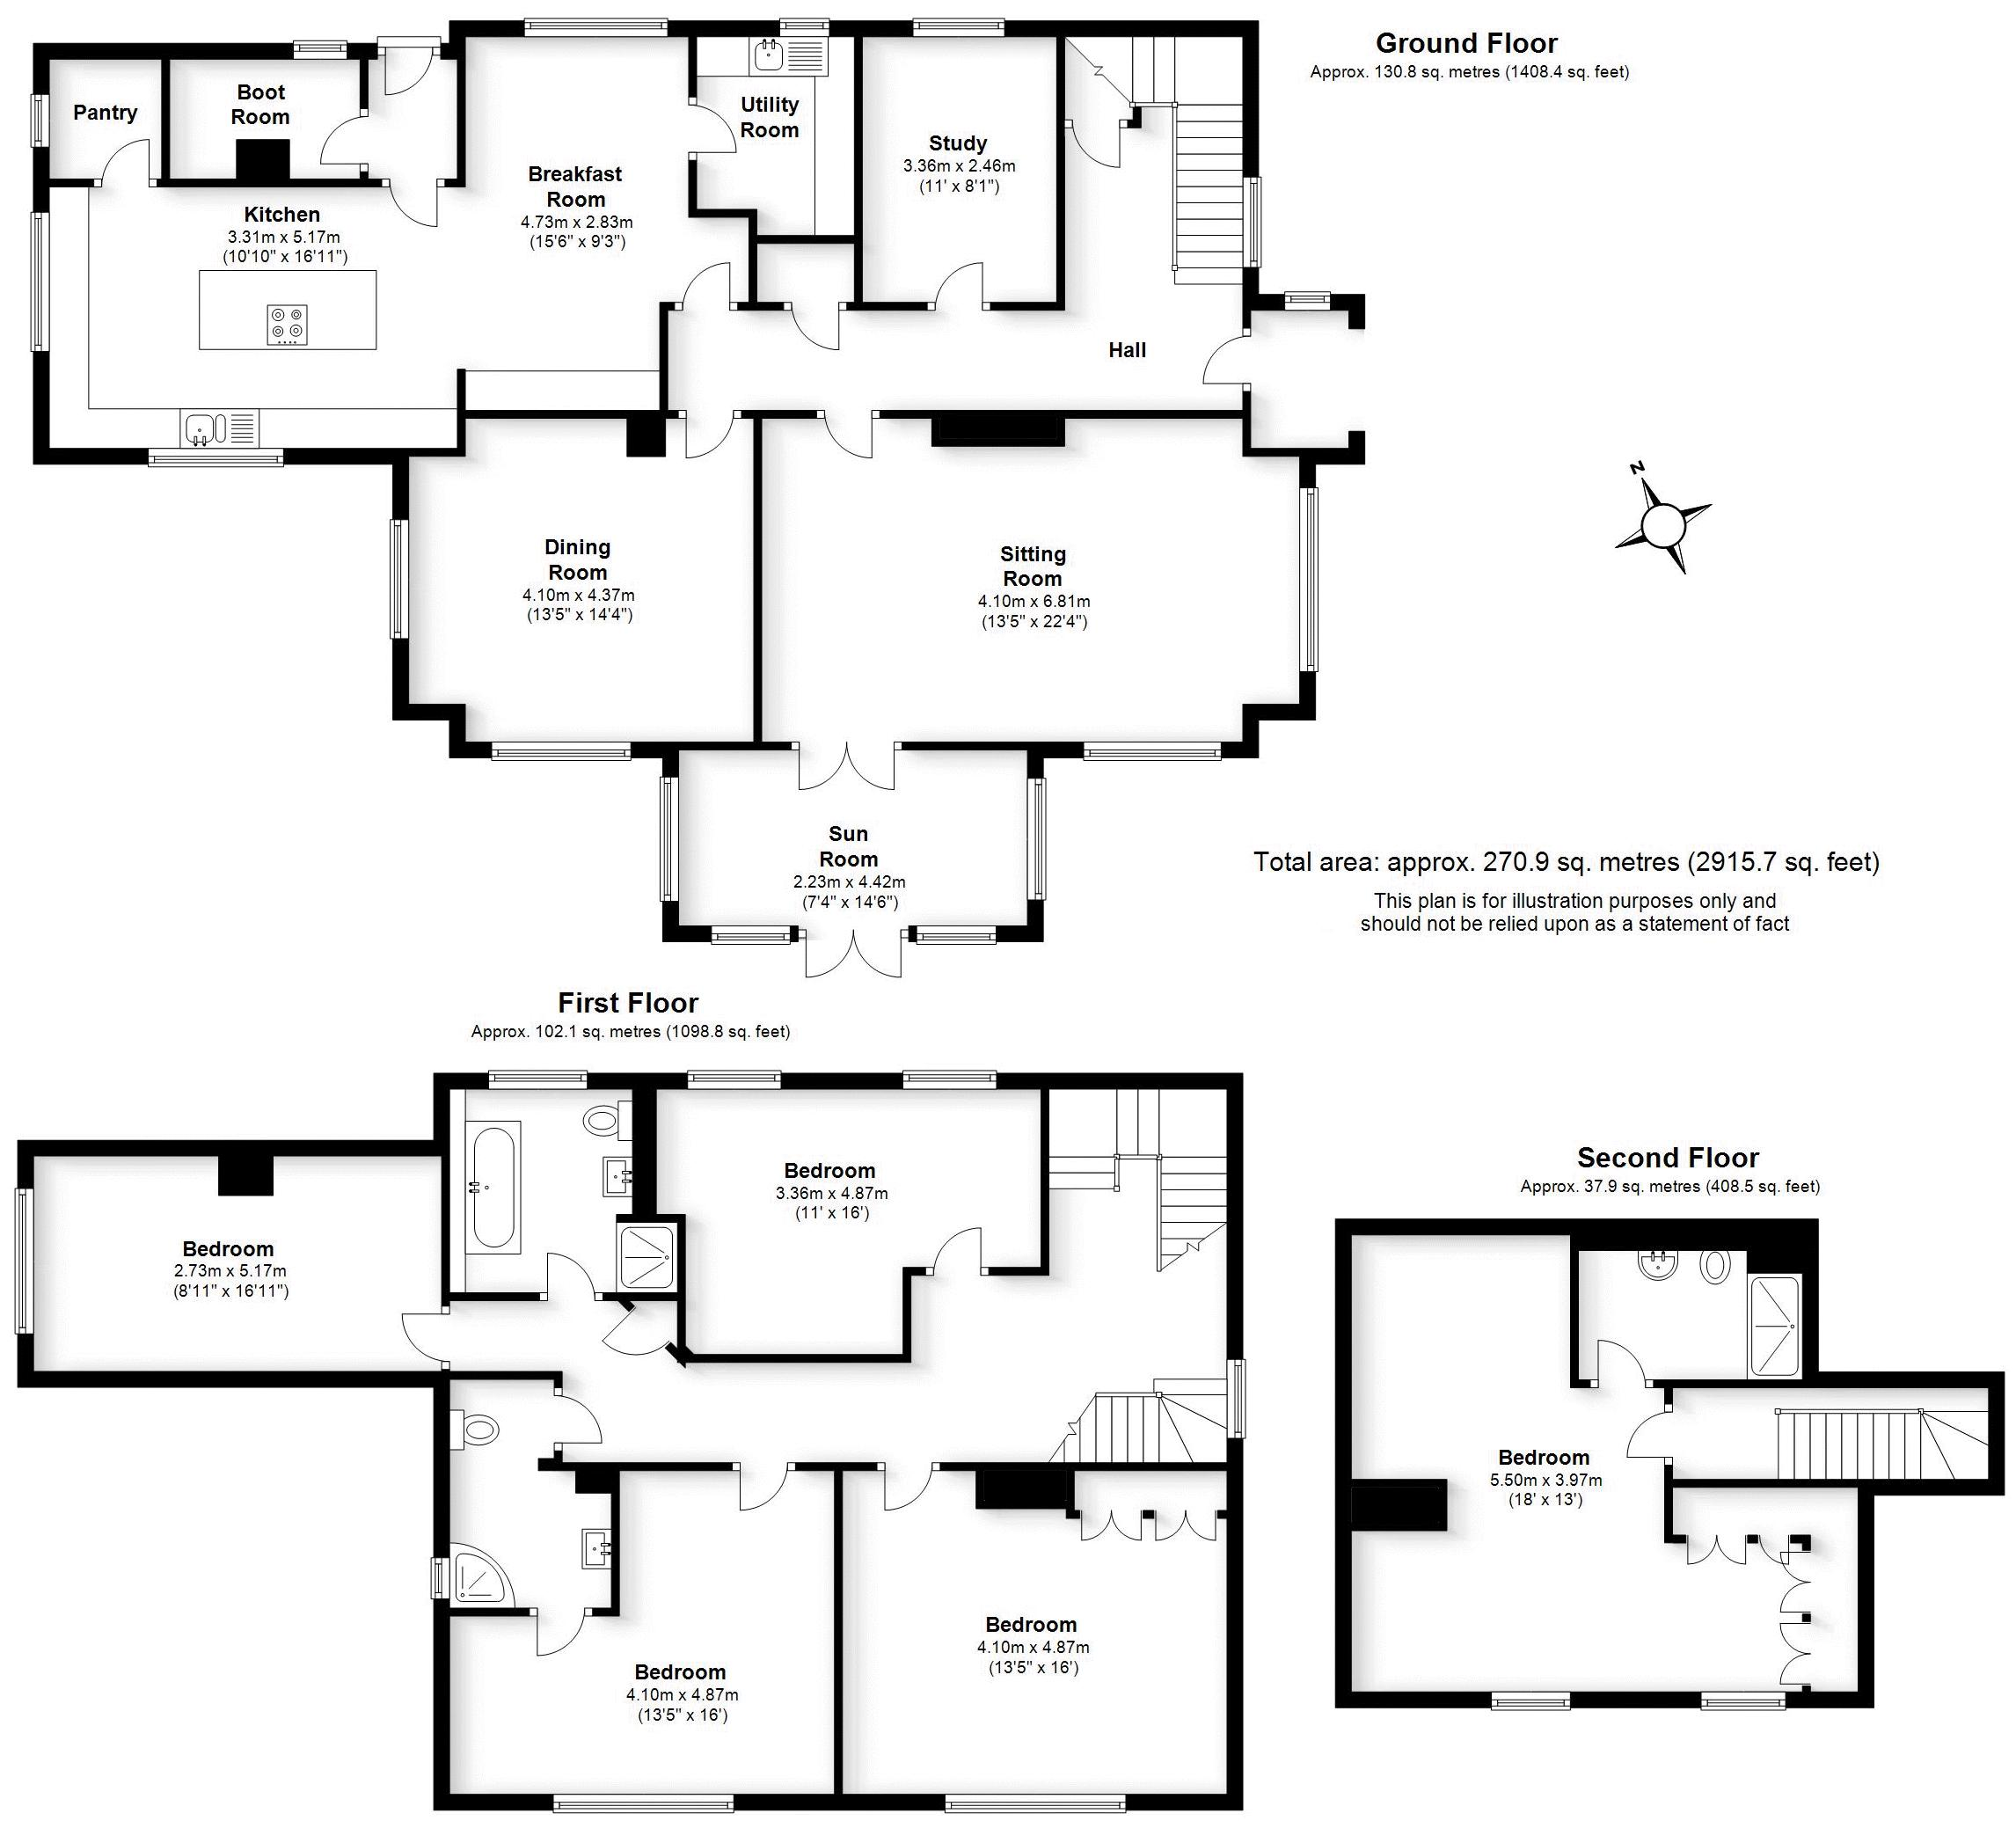 Borrowcop Lane, Staffordshire. Floorplan.